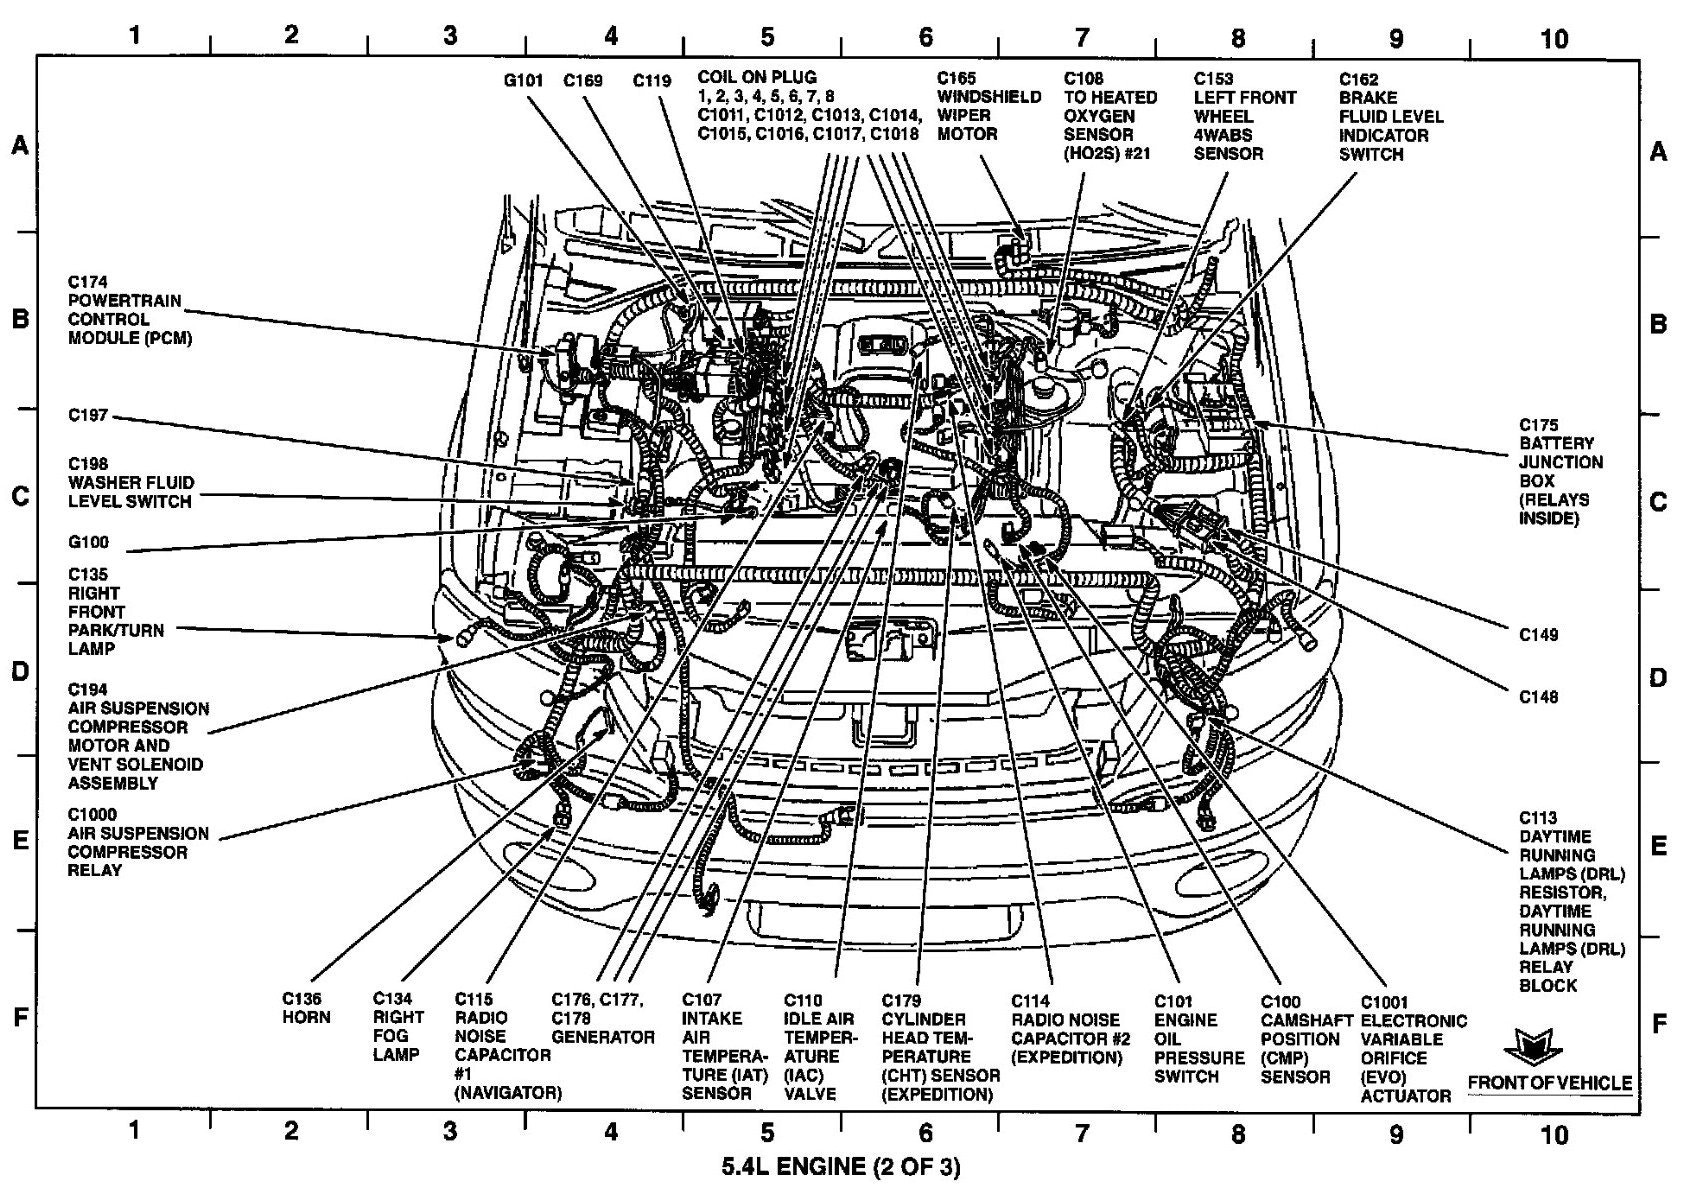 2000 ford engine diagram wiring diagram center Mitsubishi 3.5 V6 Engine Diagram